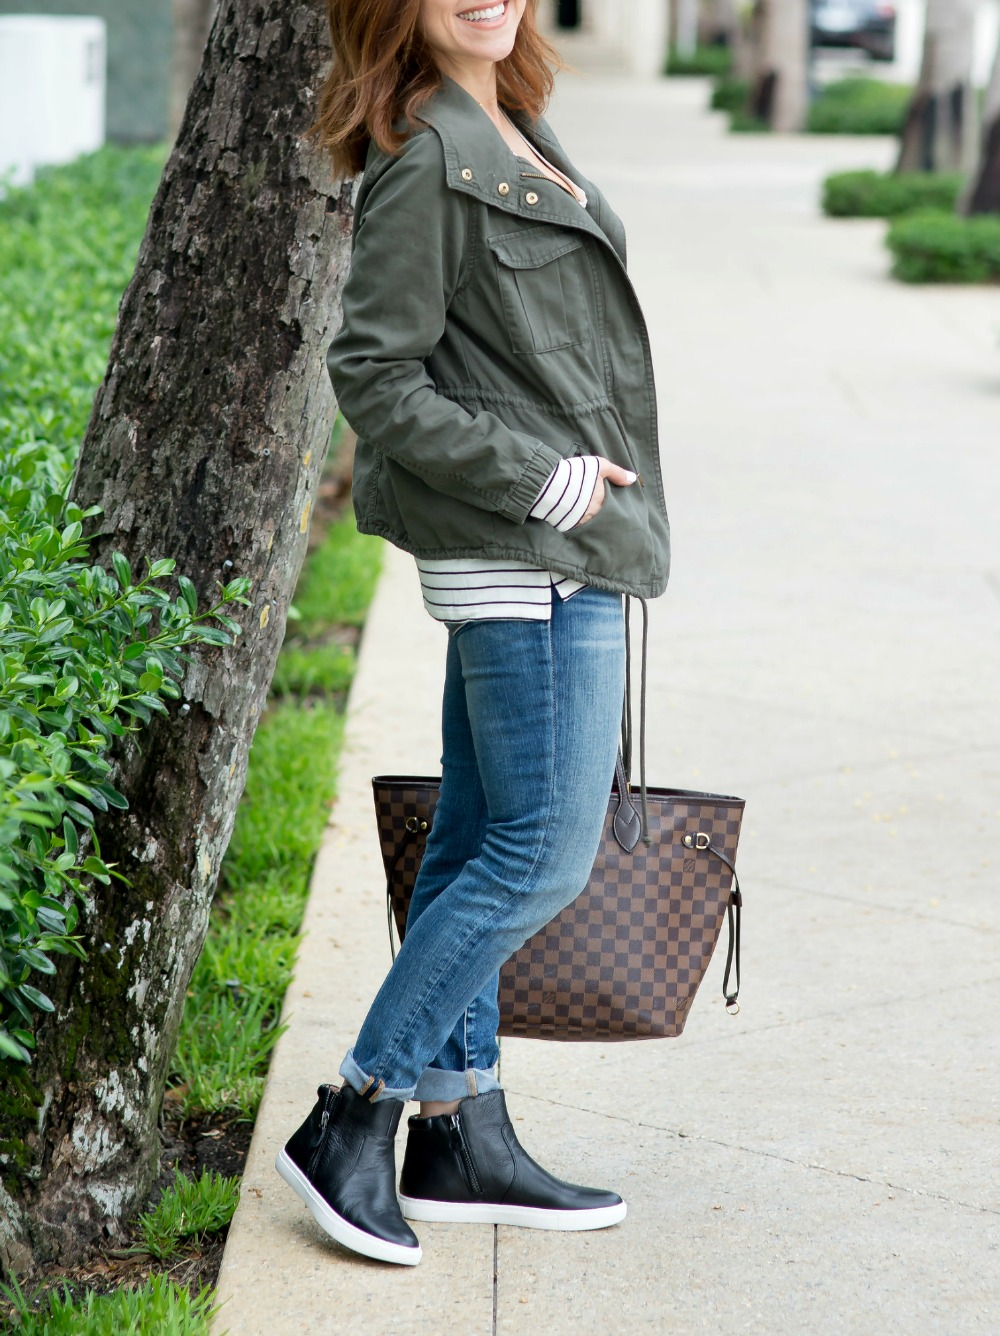 Fall outfit inspiration with cargo jacket // the modern savvy, a life & style blog